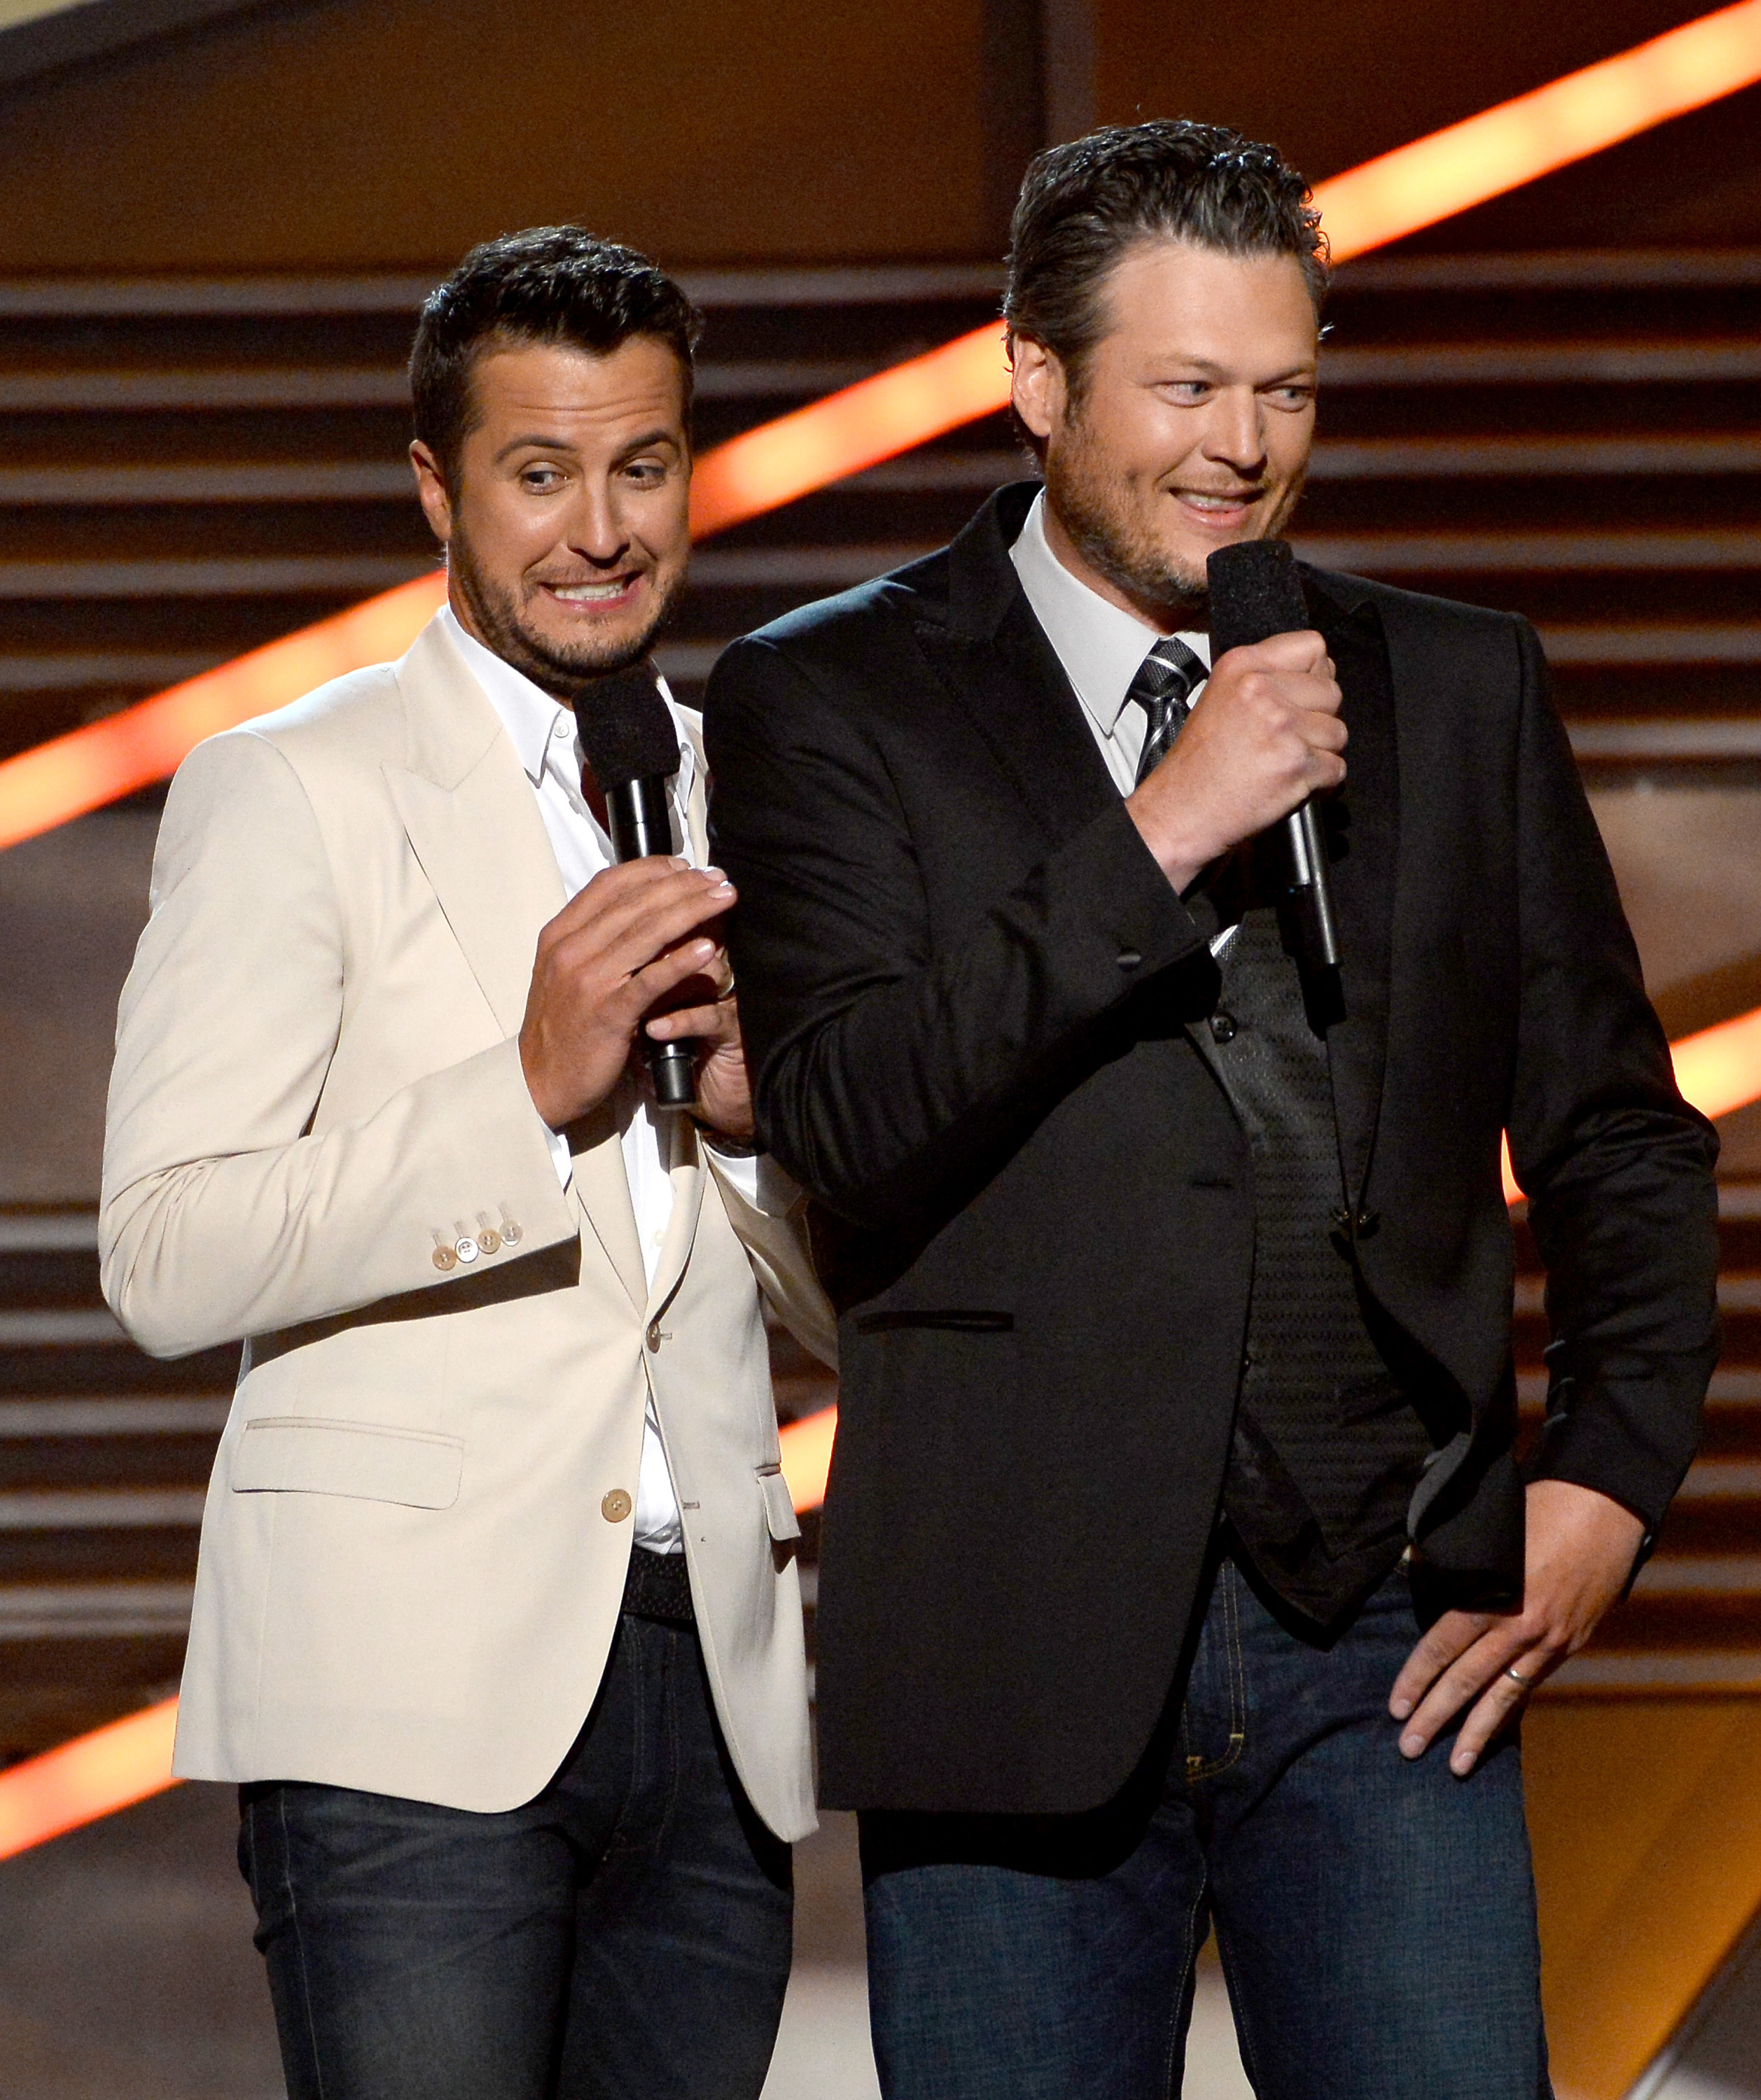 luke bryan and blake shelton 2014 ACM